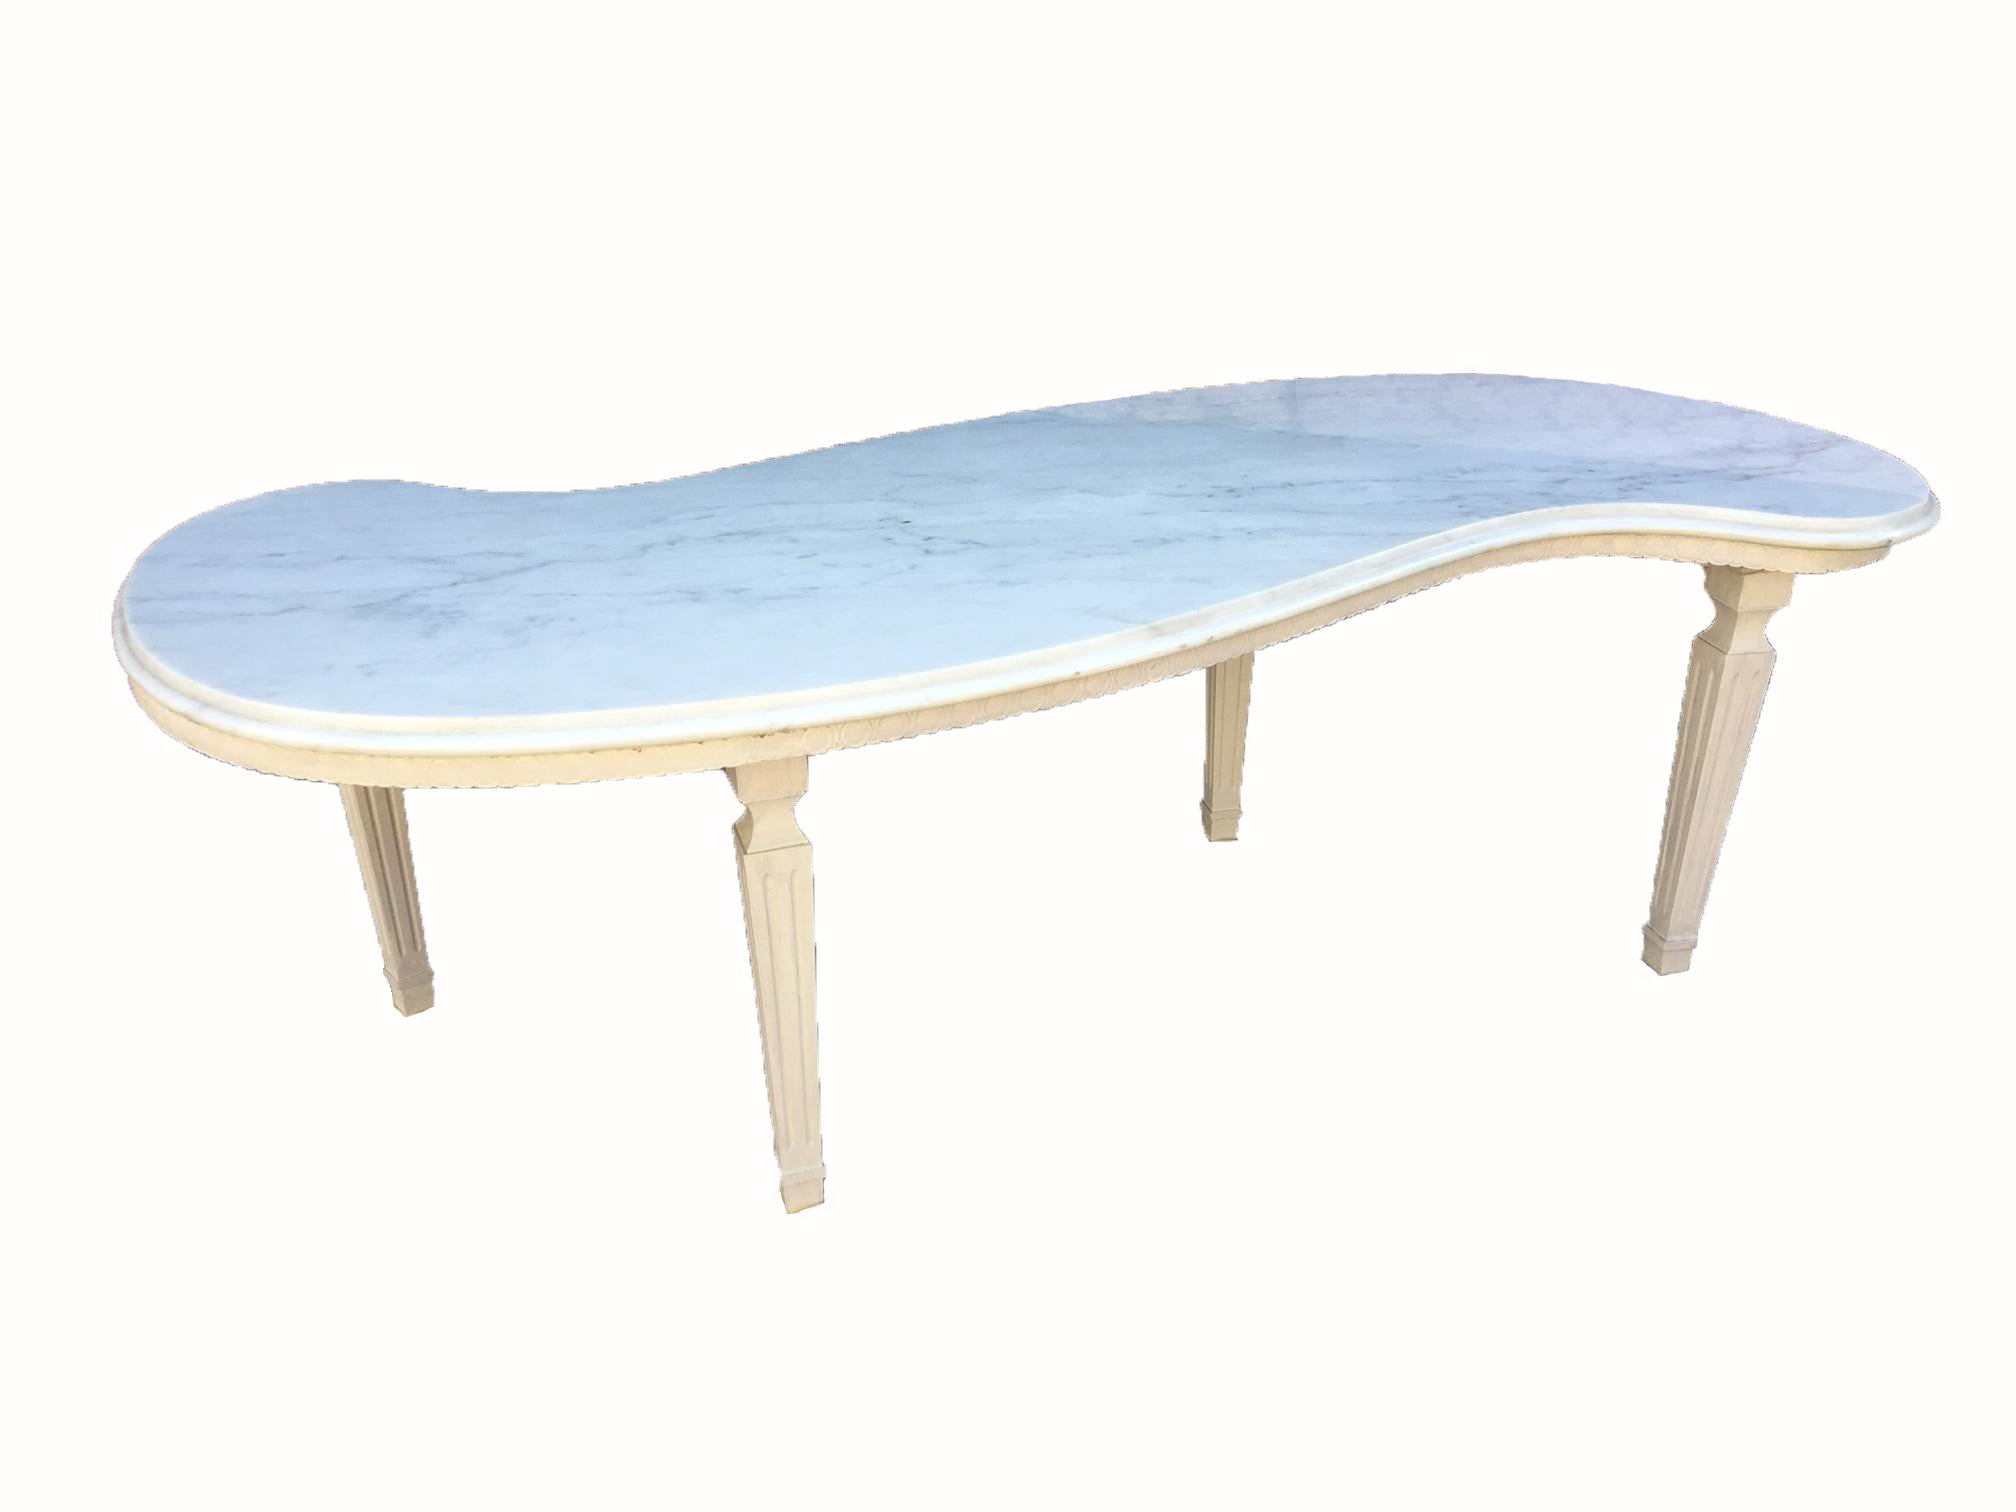 Italian Renaissance Style Marble Top Coffee Table